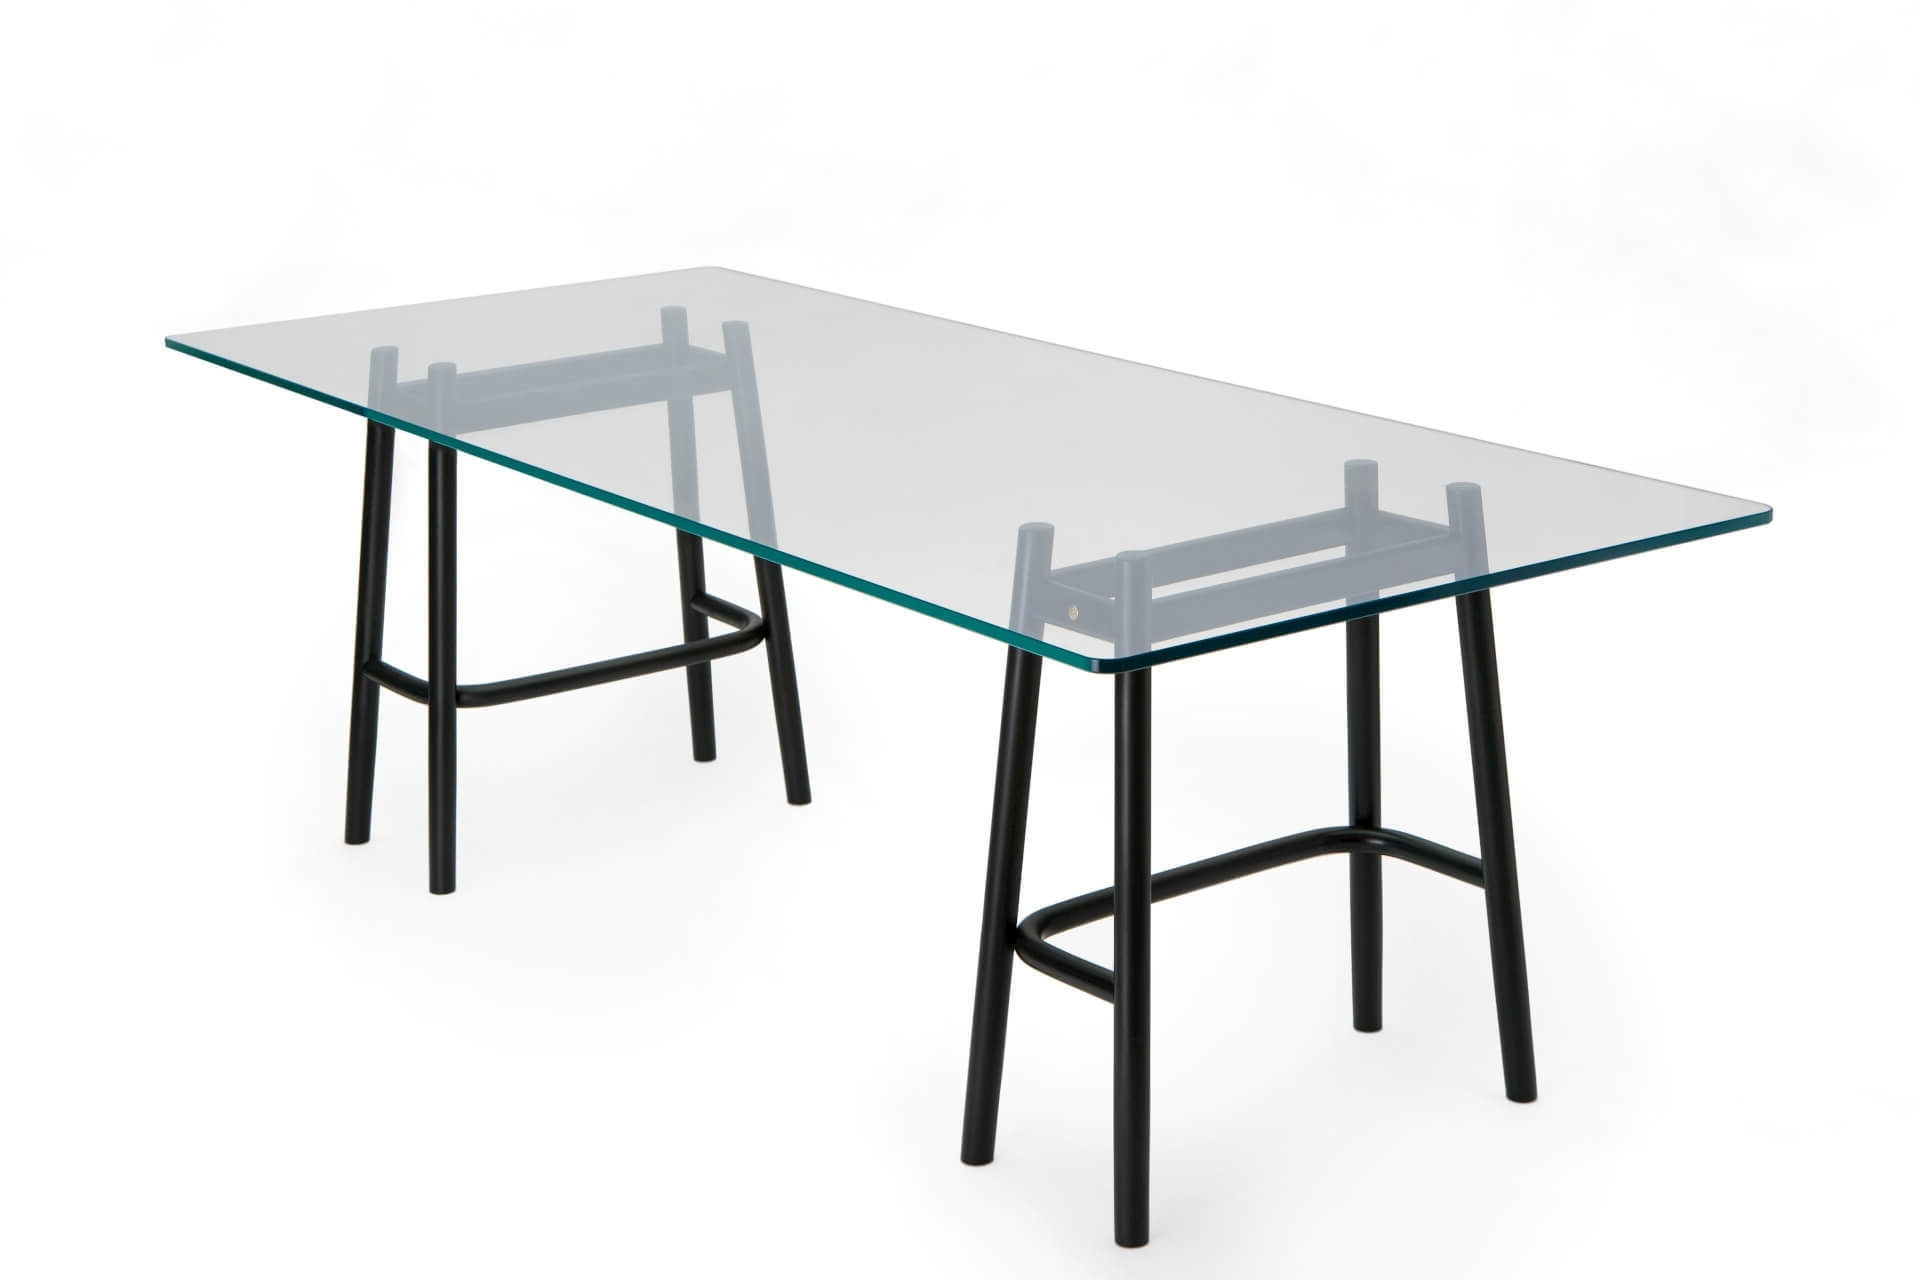 Vienna Dining Tables Intended For Most Recent Single Curve Dining Table – Gebrüder Thonet Vienna (Gallery 13 of 25)